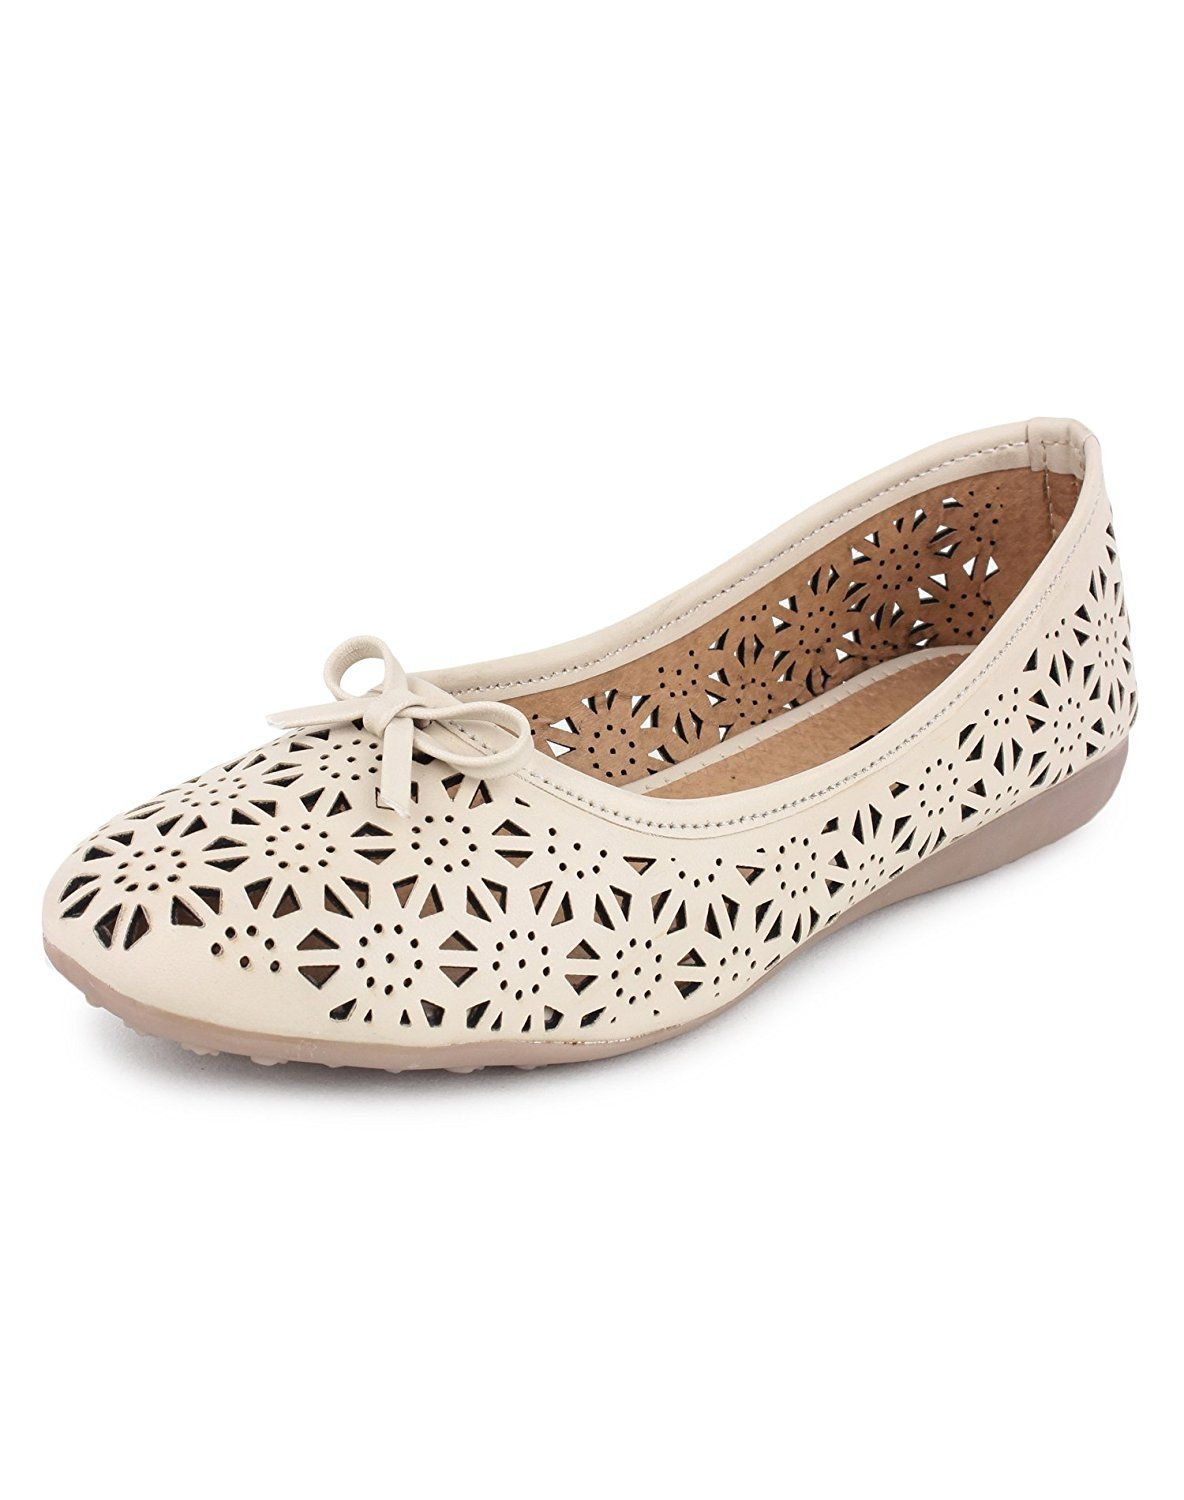 f989e0aa4be Yahe Women's Casual Napa Leather Flat Belly Shoe Y-38: Amazon.in: Shoes &  Handbags